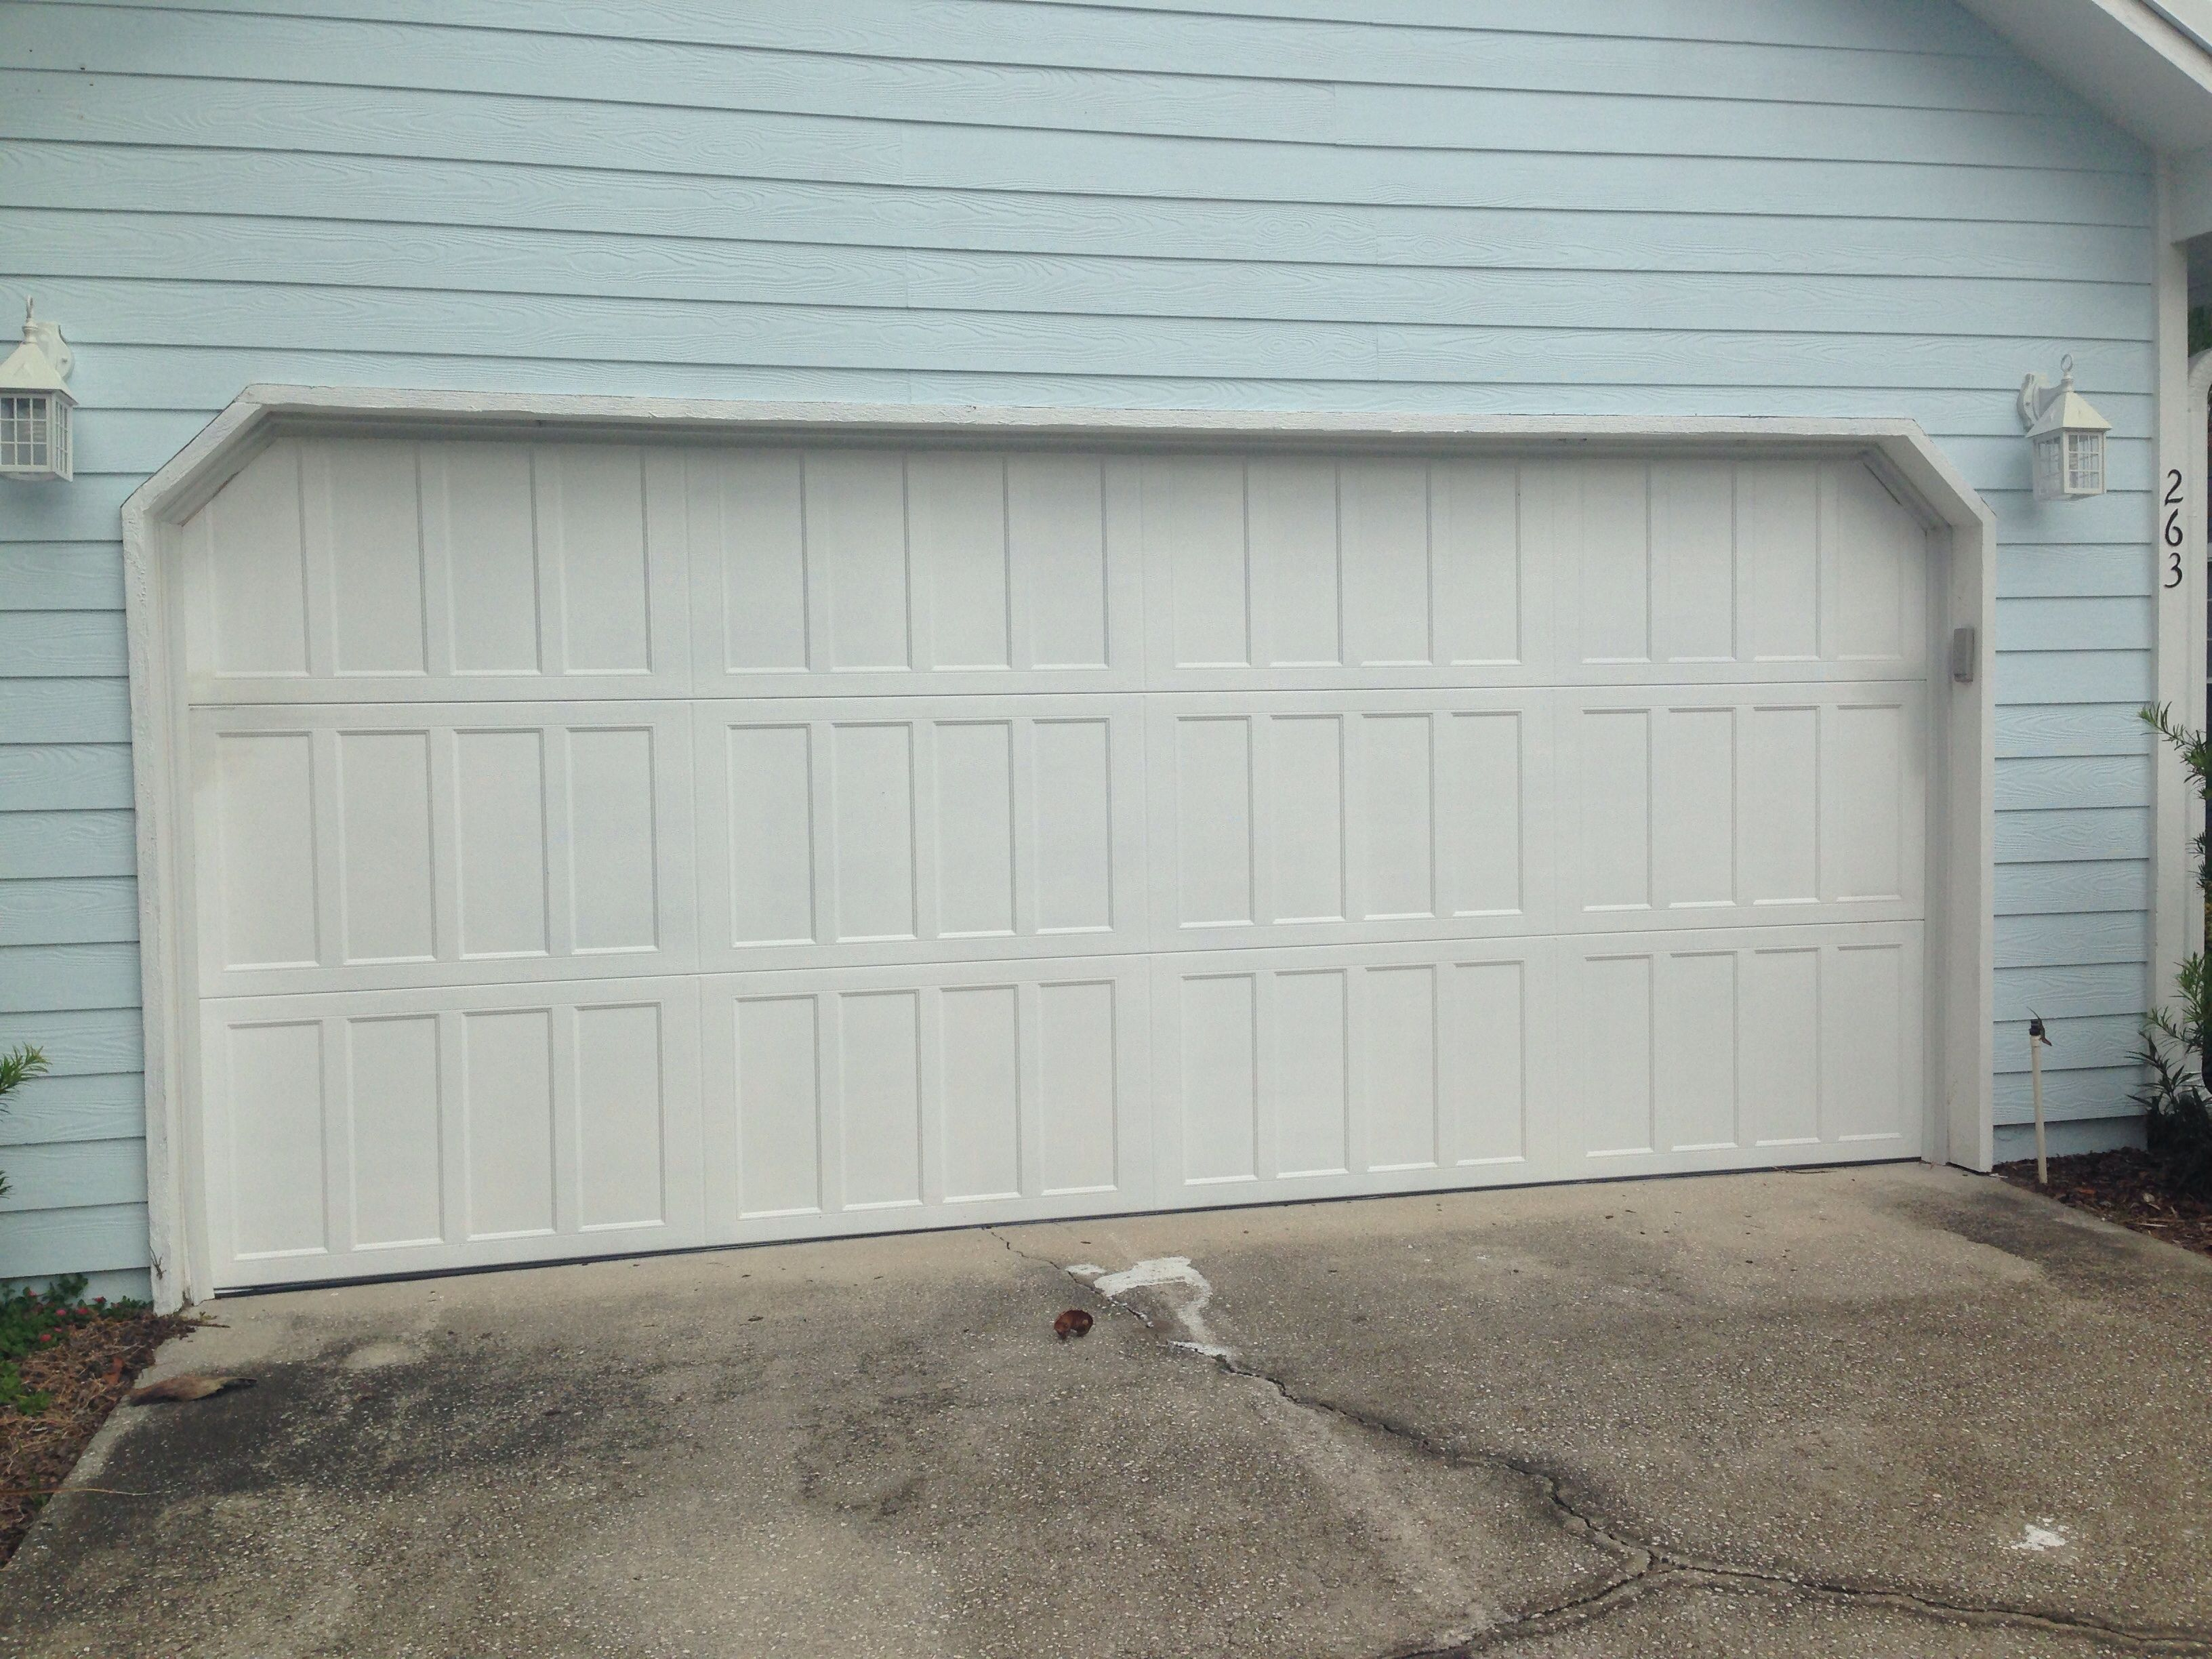 Classica northampton garage door white 9 x 8 no windows - Amarr Classica Northampton Closed Square In True White Garage Door Installed On A Home Remodel In